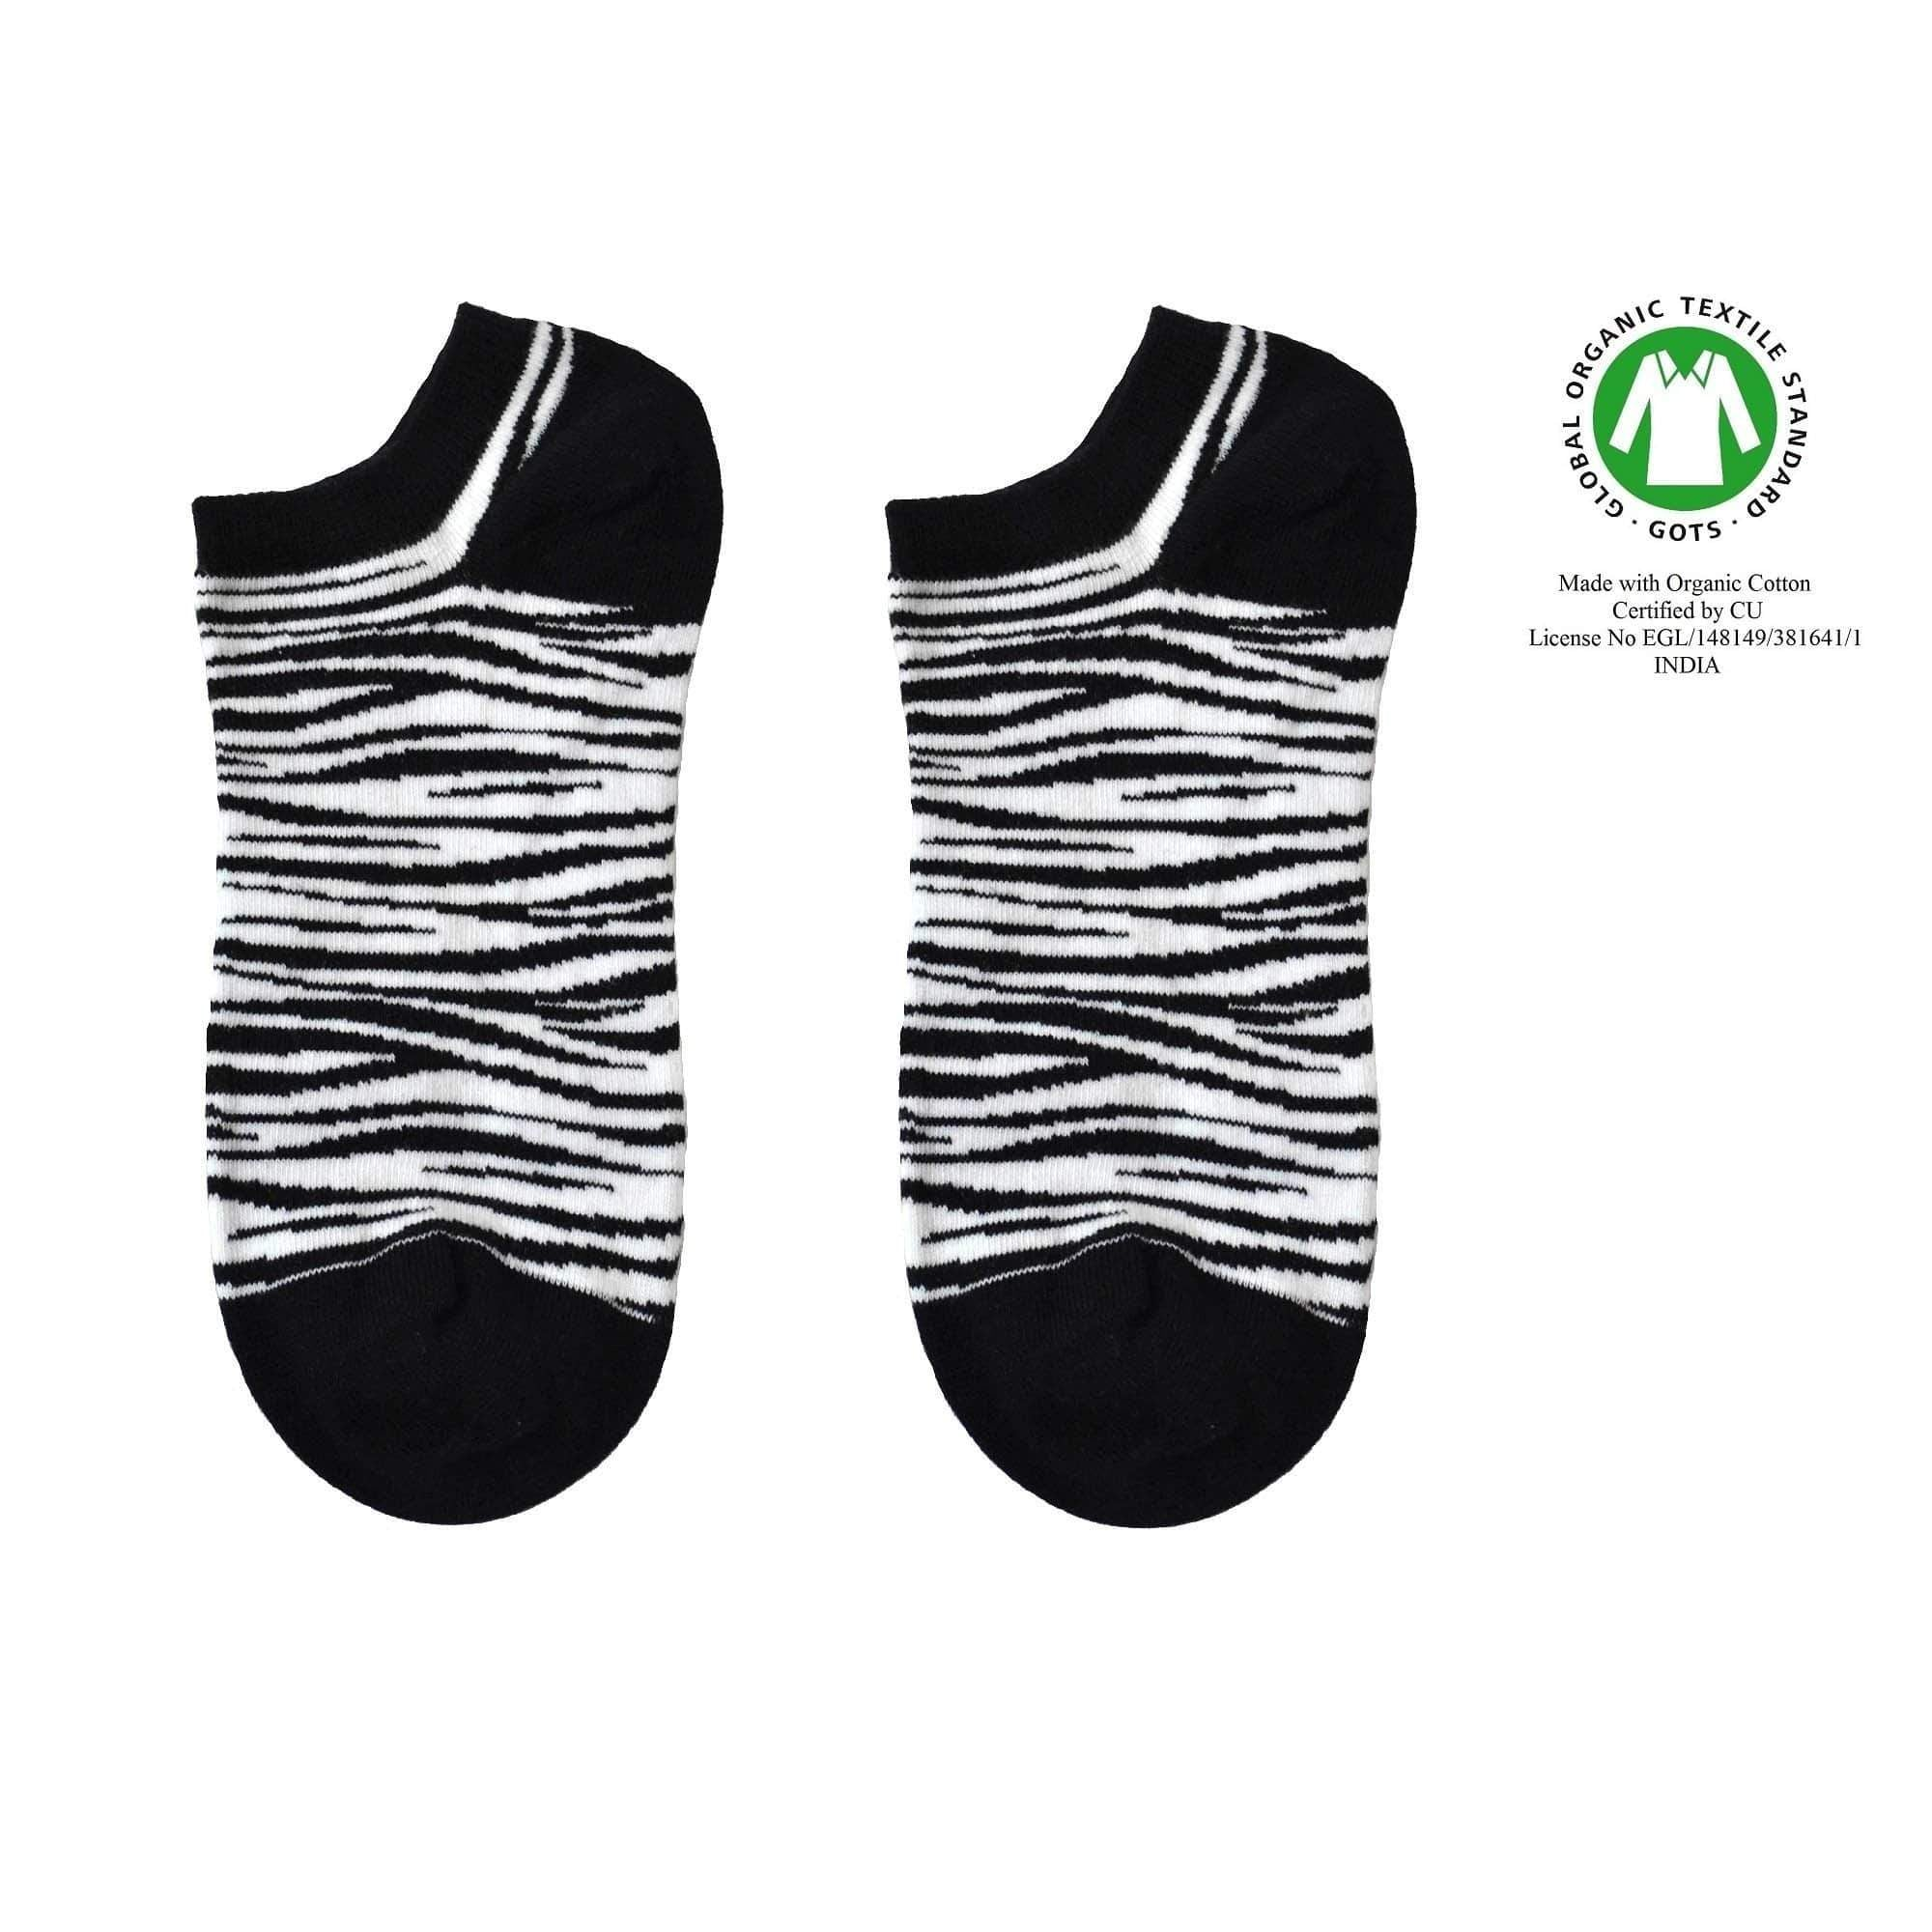 Organic Socks of Sweden sock Björkman Socks. Organic Cotton. sustainable fashion ethical fashion